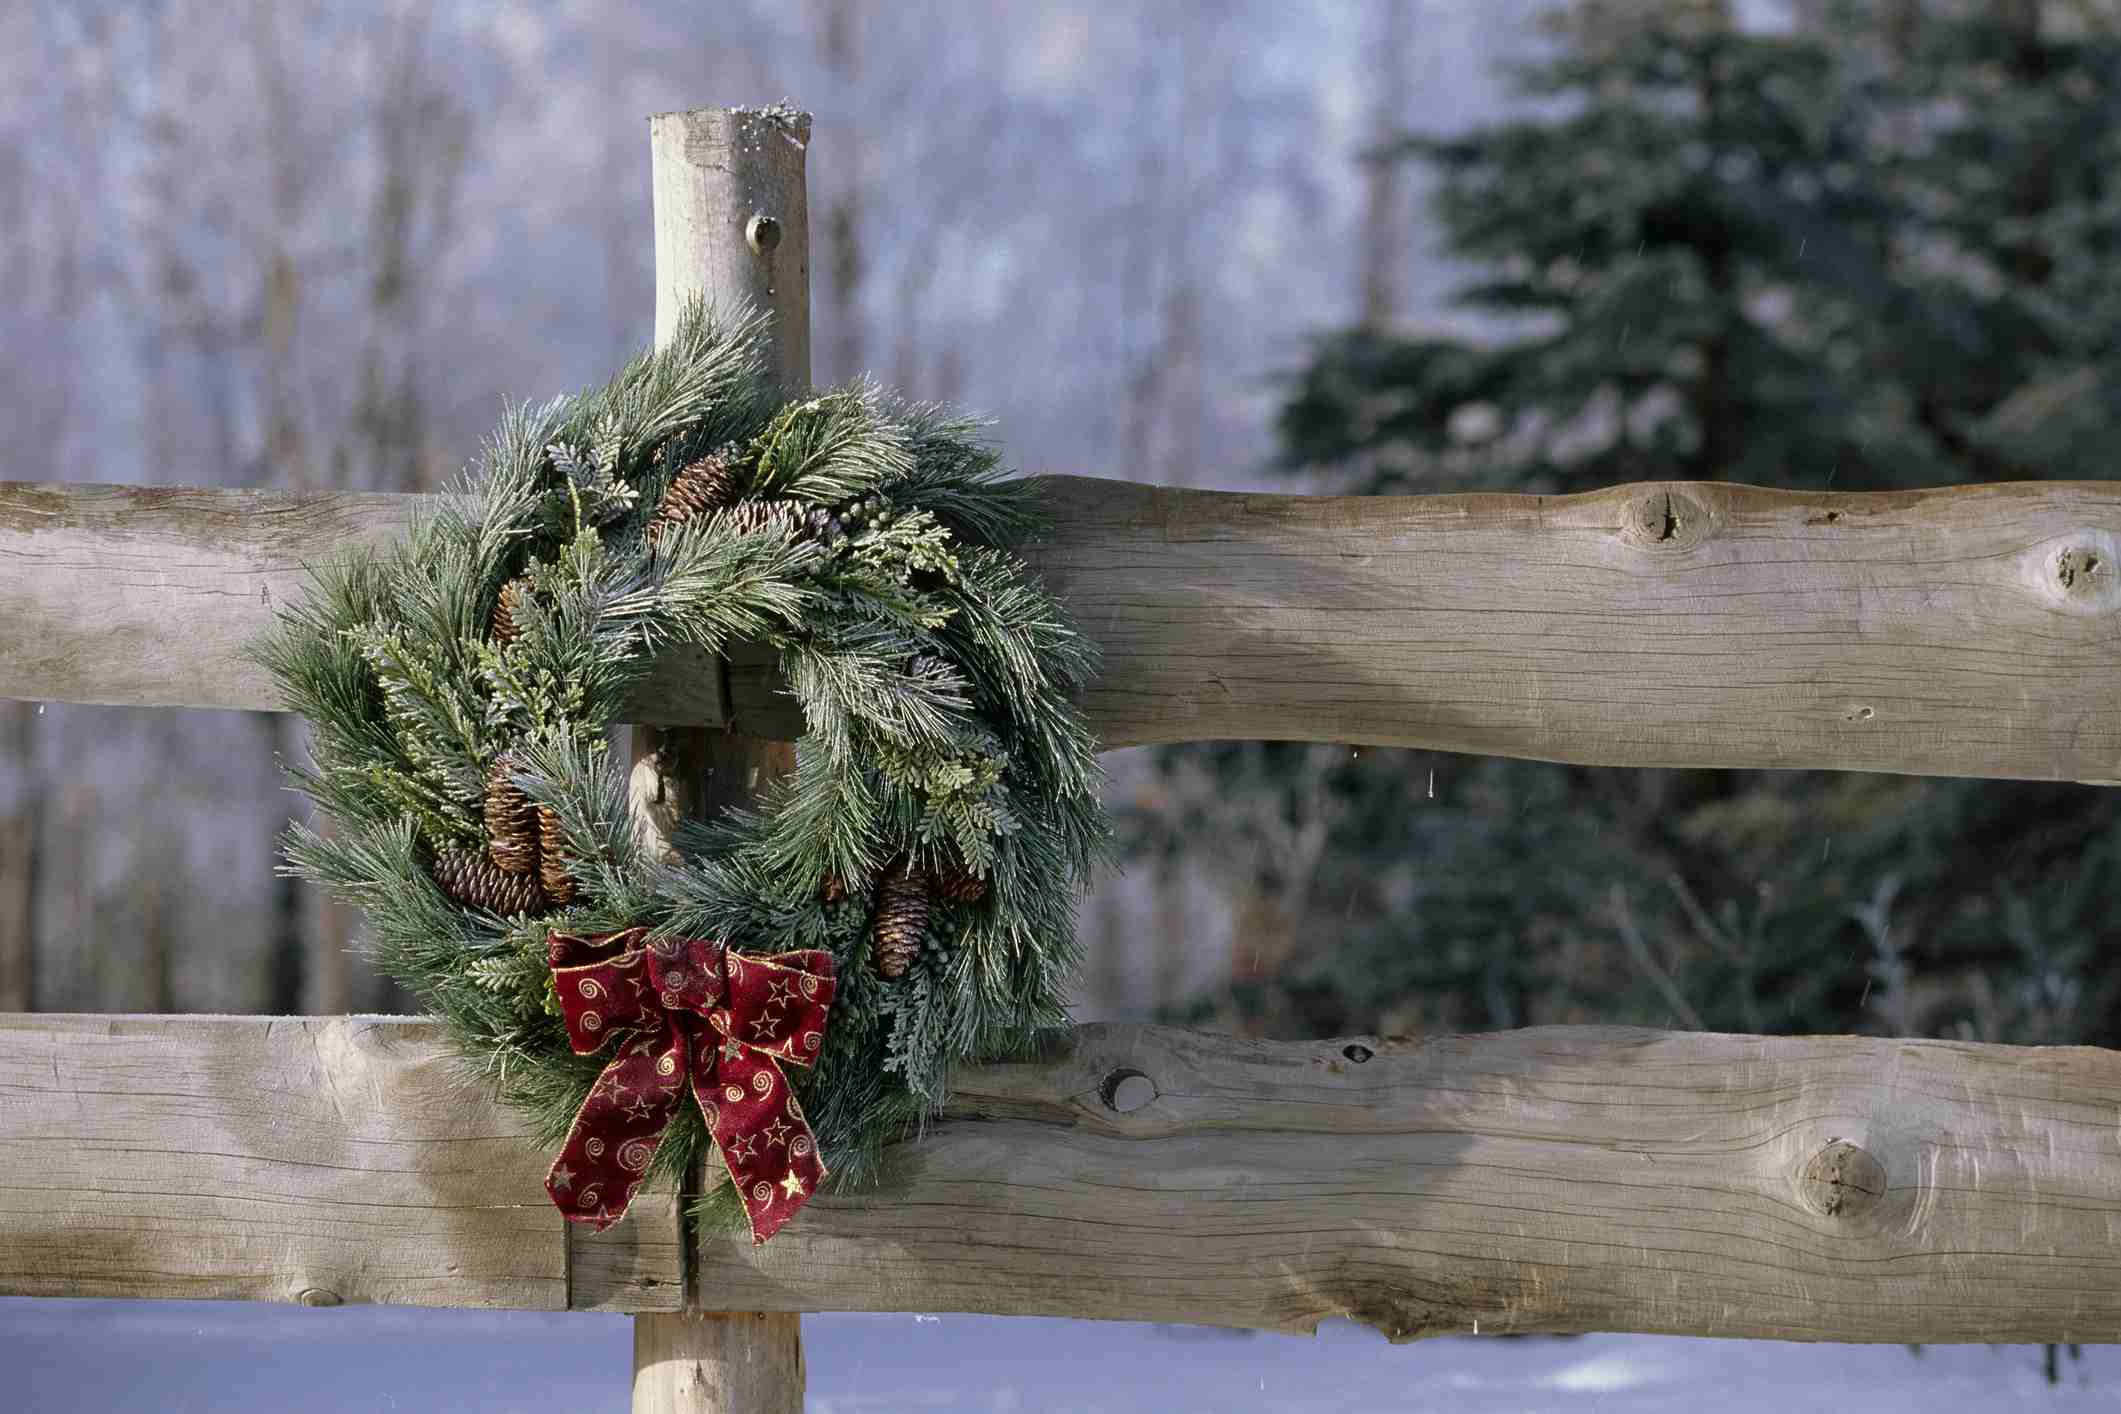 Wooden fence decorated with a Christmas wreath.